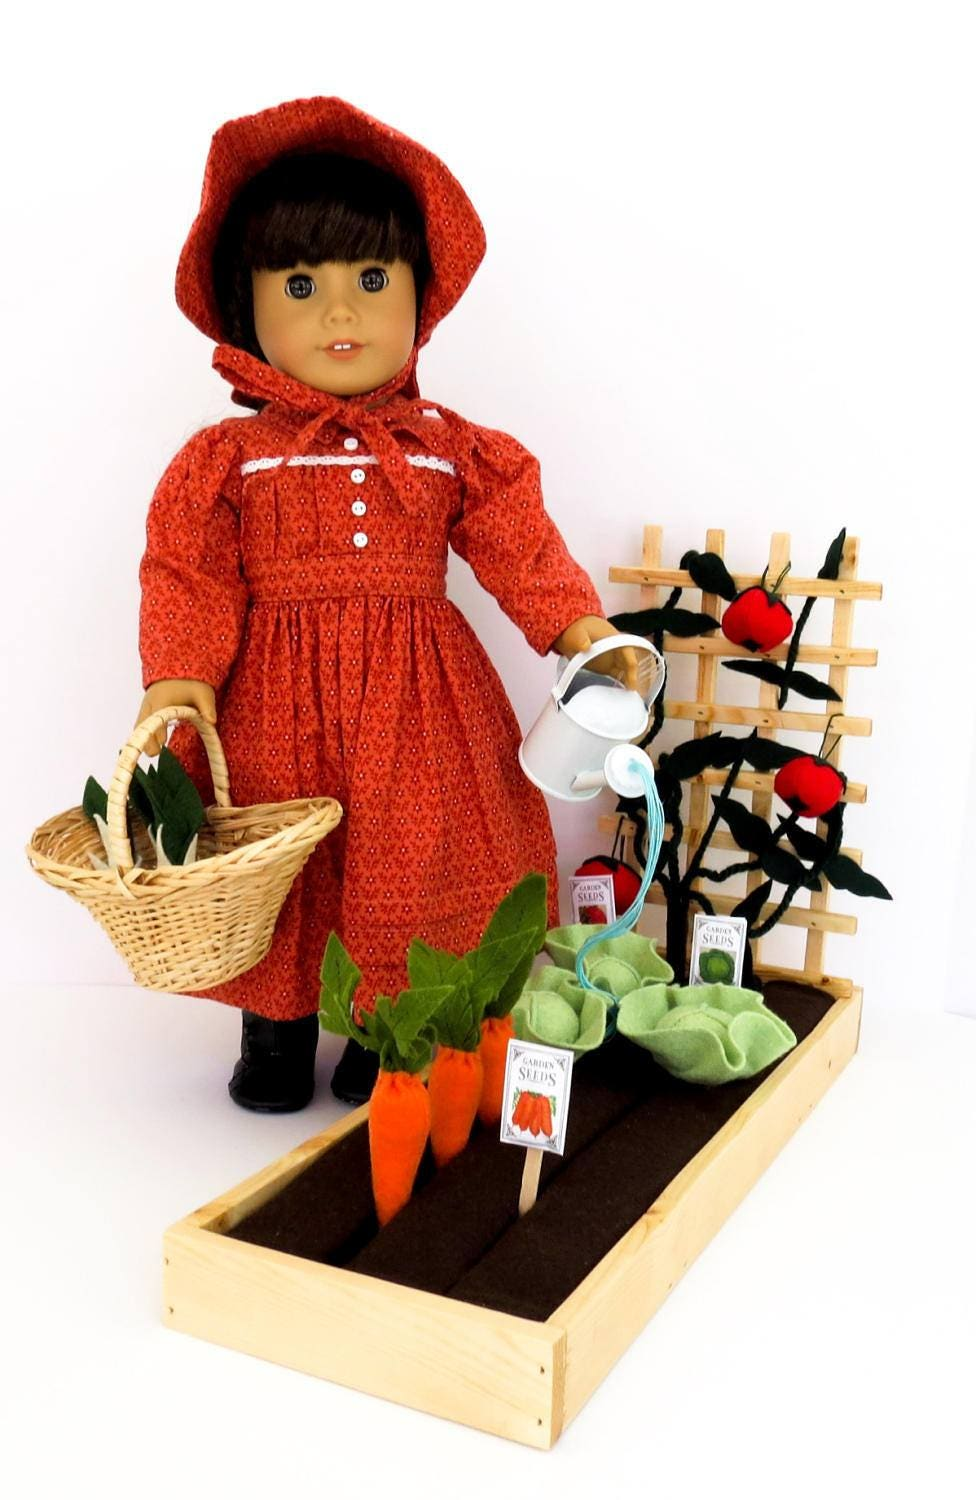 Doll garden handcrafted for 18 inch dolls such as american for Garden tools for 18 inch doll